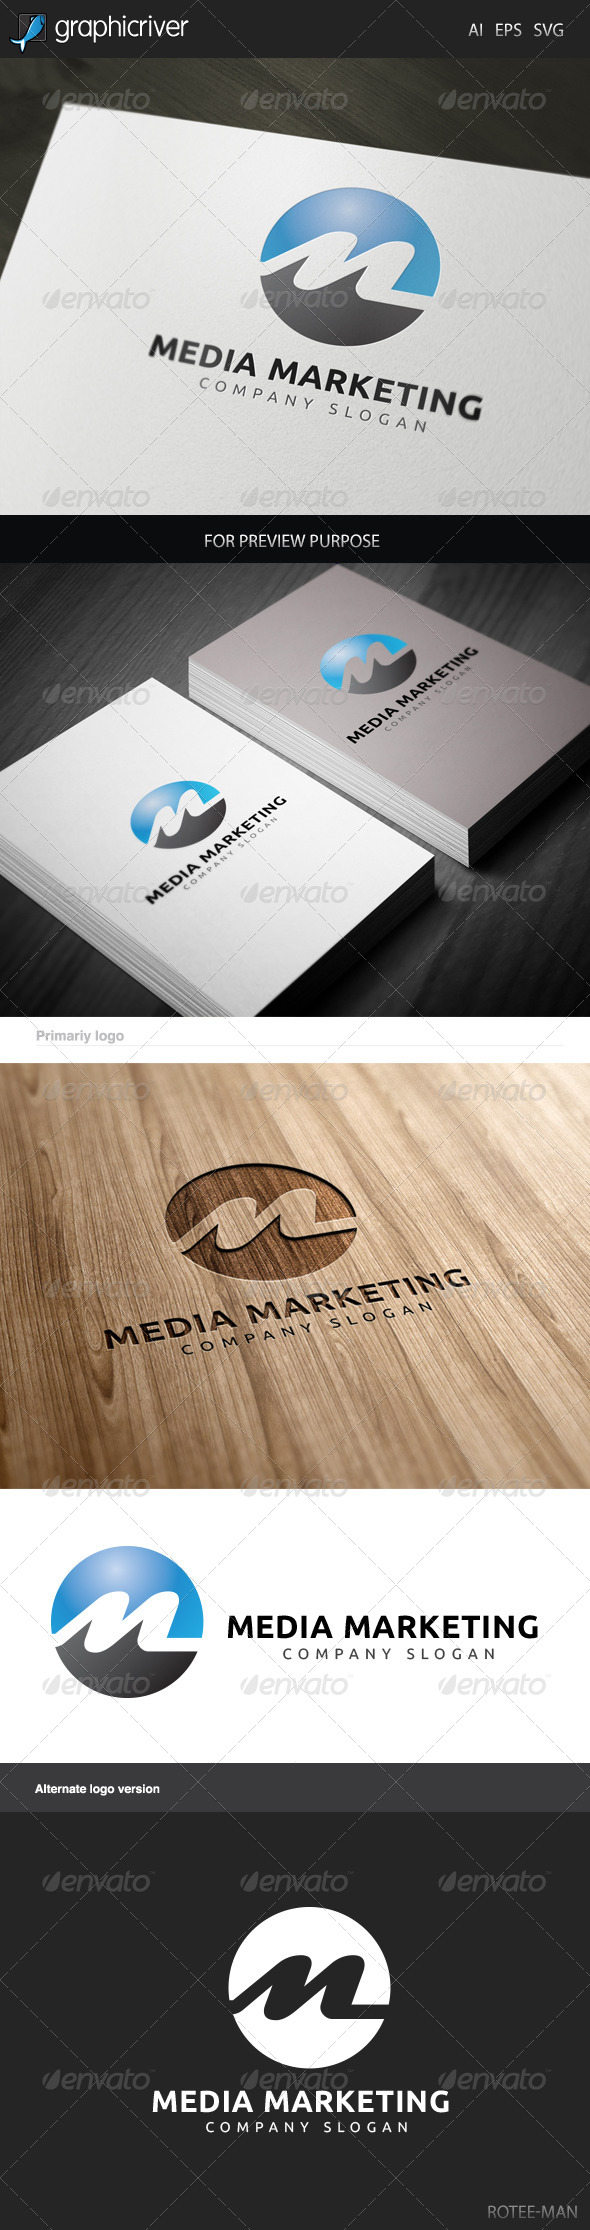 GraphicRiver Media Marketing Logo 6018267